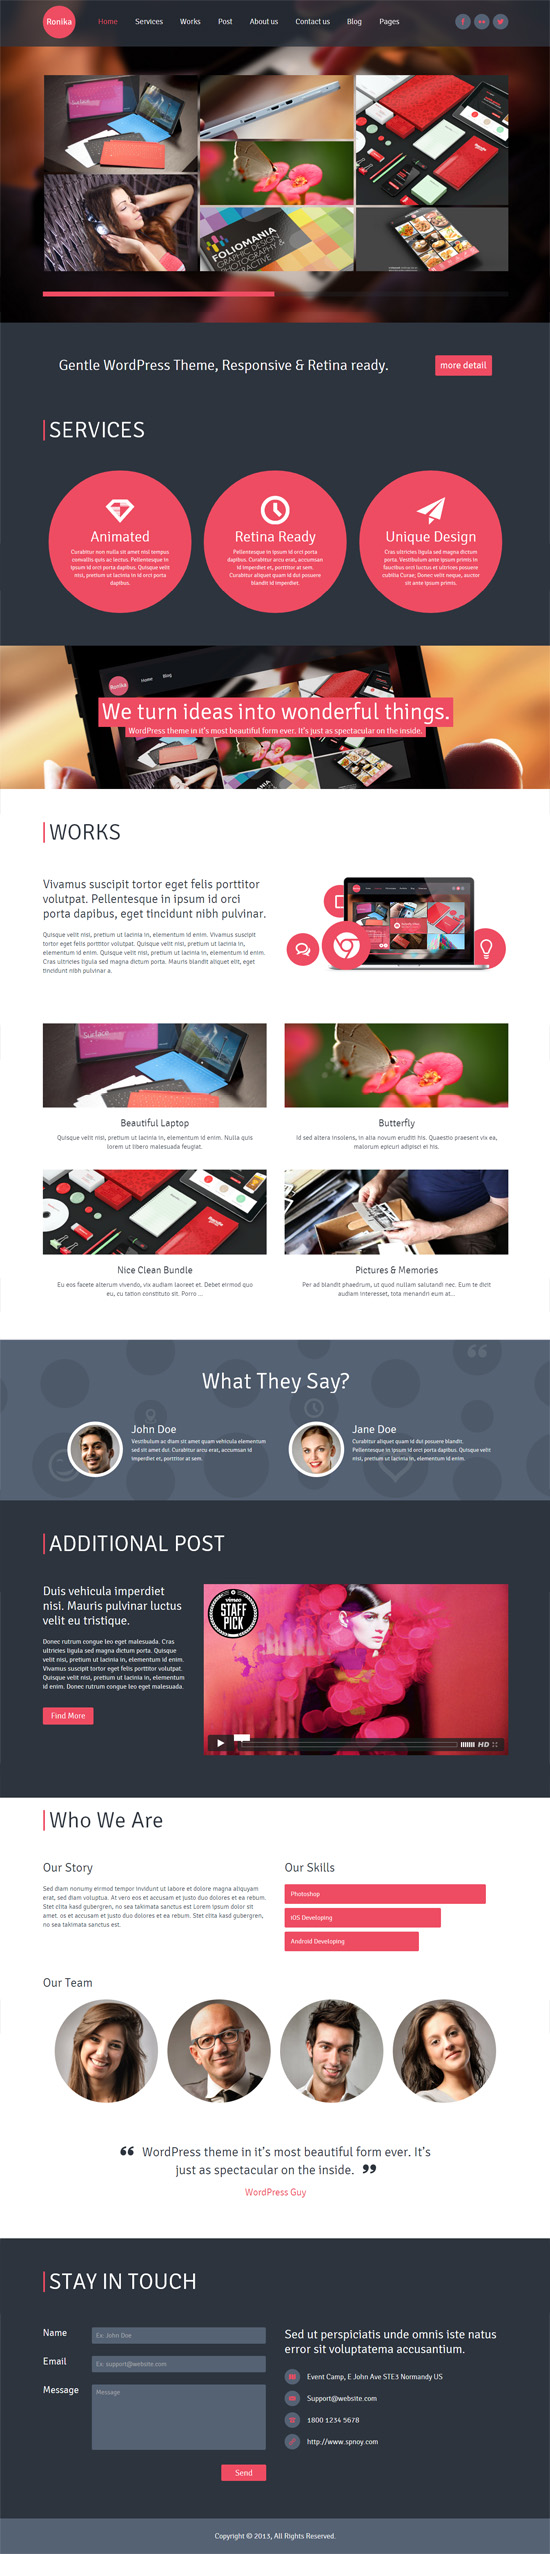 Ronika – One Page/Multi Page WordPress Theme